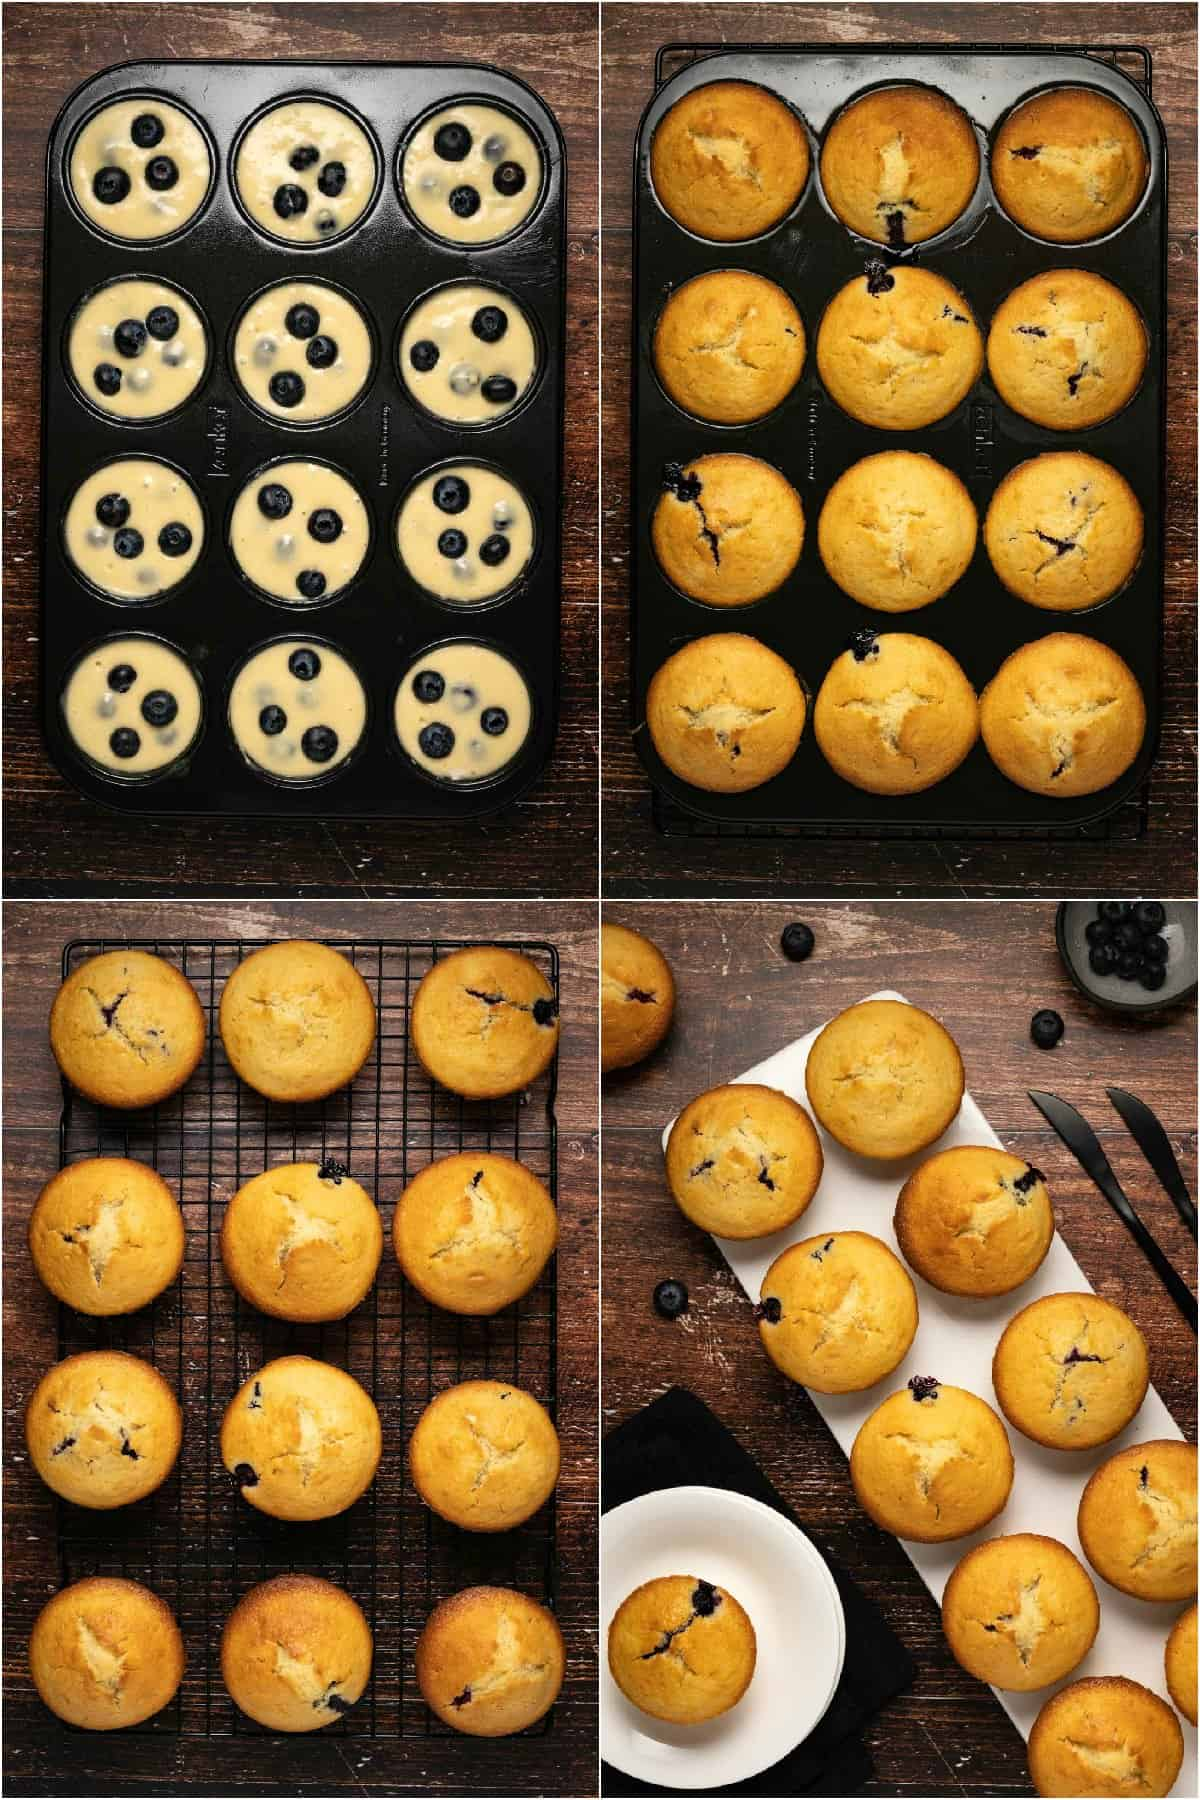 Step by step process photo collage of making blueberry muffins.